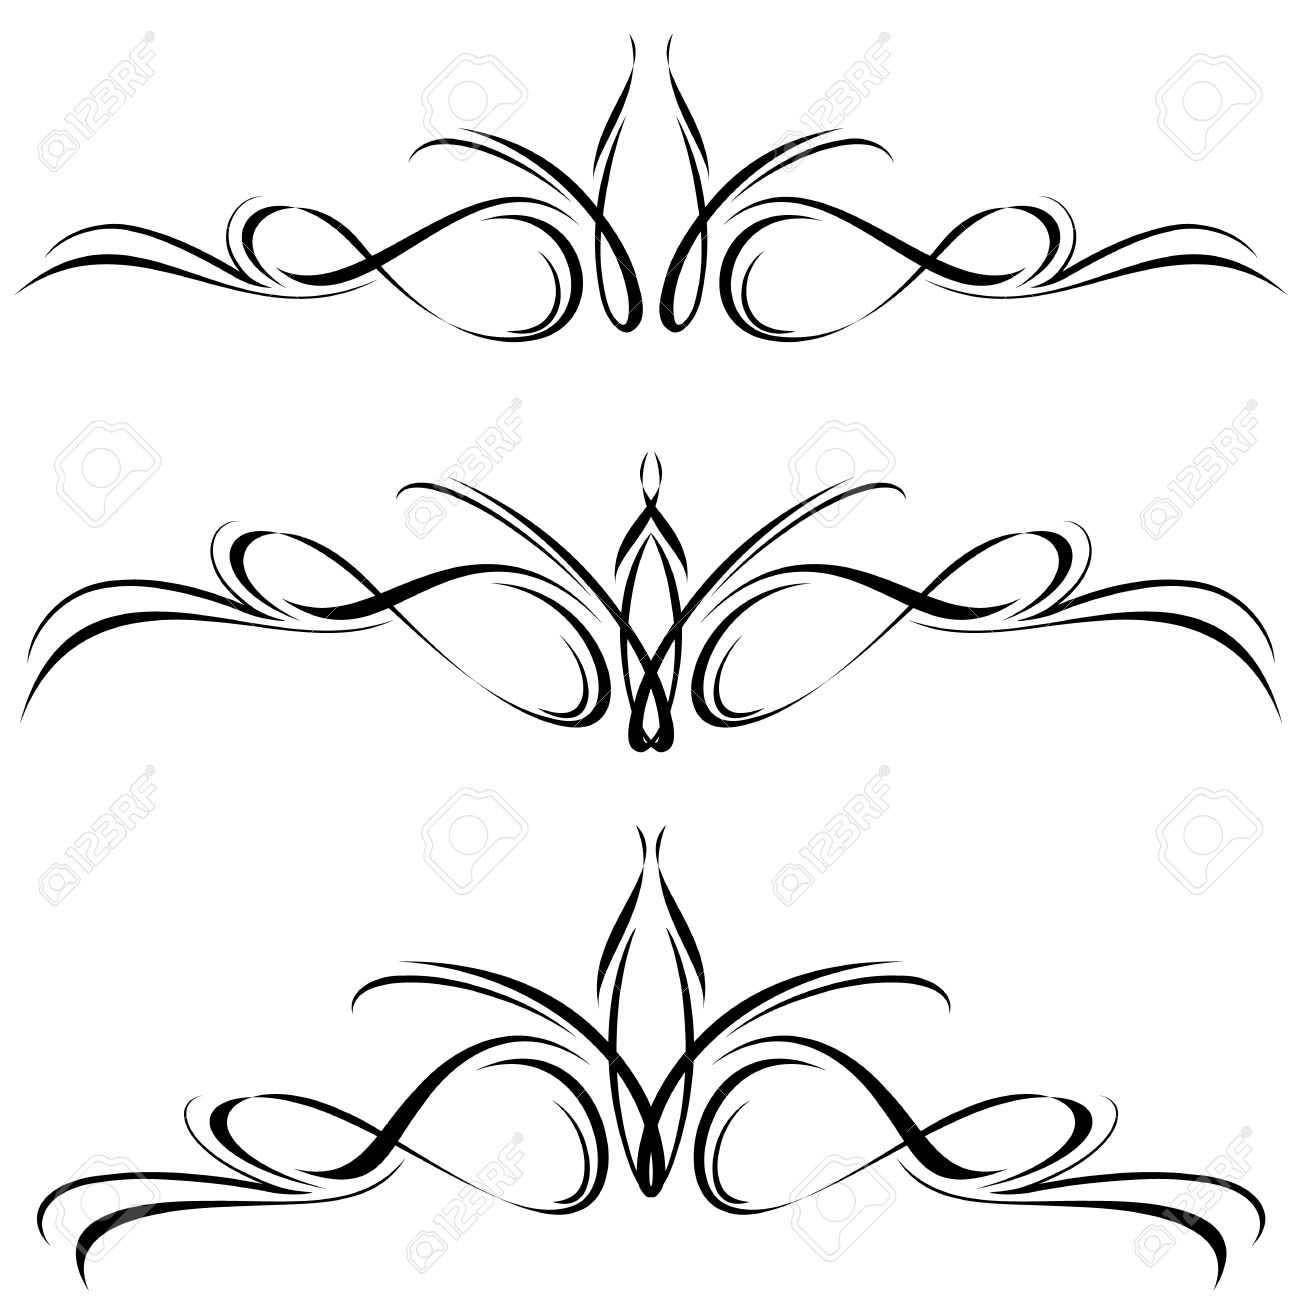 Abstract Black Flora Design Element Nice Design Elements For Royalty Free Cliparts Vectors And Stock Illustration Image 12087880